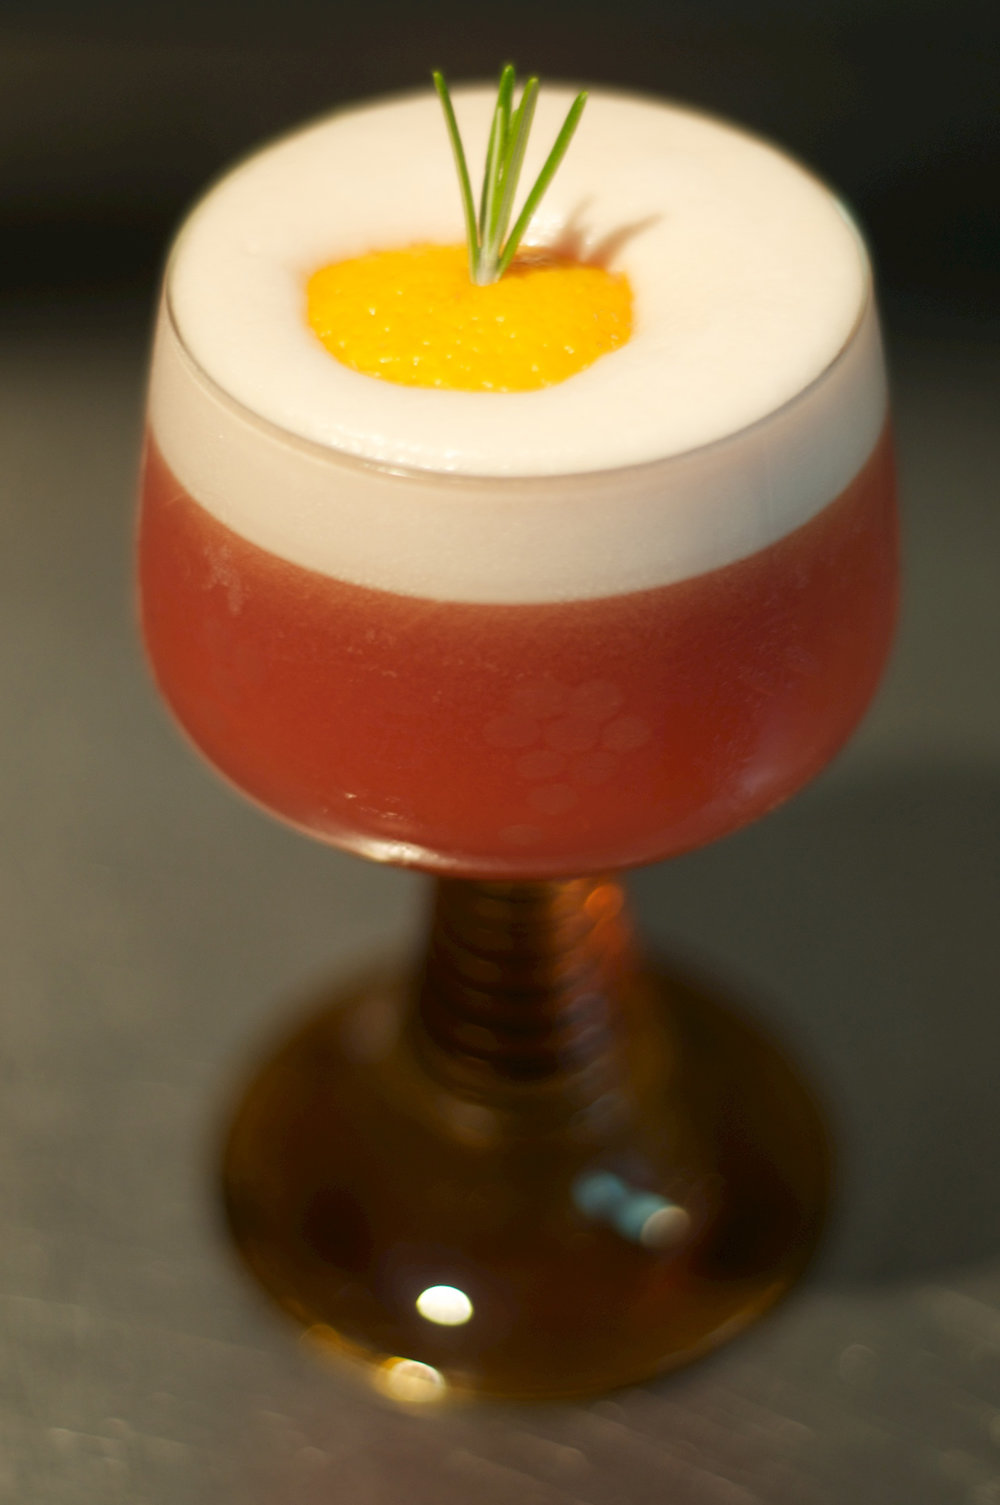 Bloody Ruby - 30ml gin10ml vermouth5ml Campari30ml blood orange20ml lemon juice5ml rosemary syrup20ml egg whiteShake over ice and pour